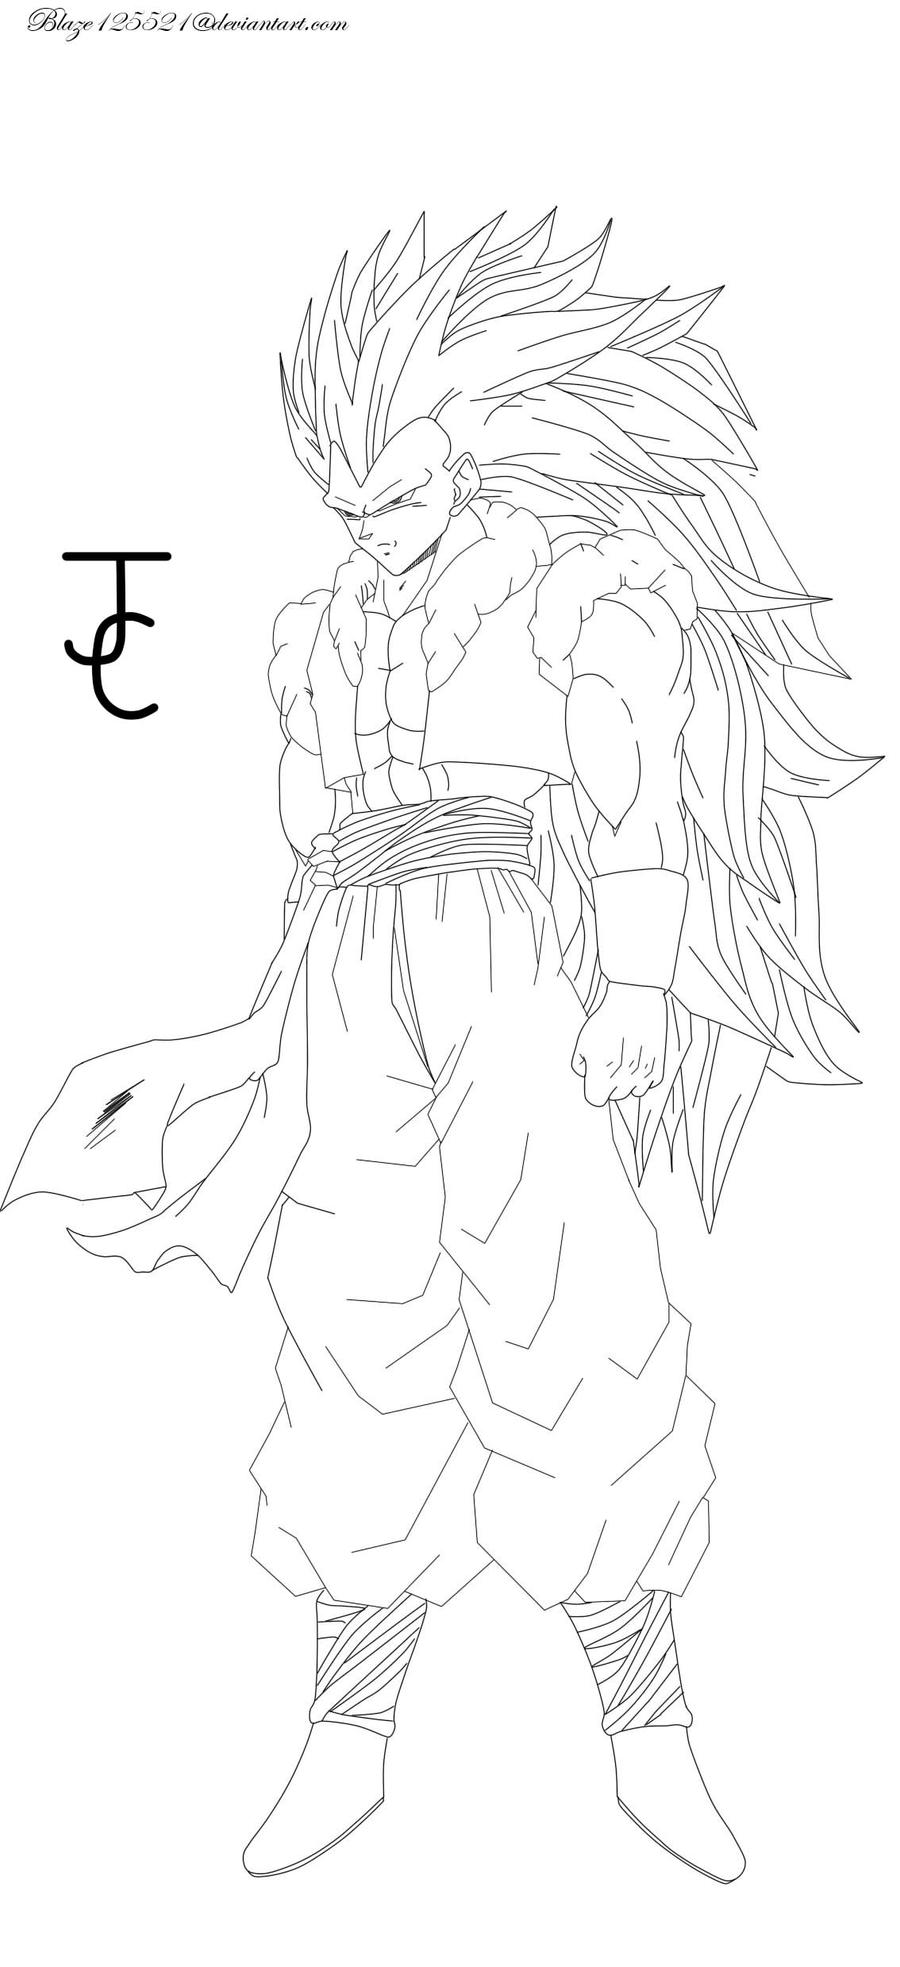 gallery images and information gotenks ssj3 coloring pages - Gogeta Coloring Pages